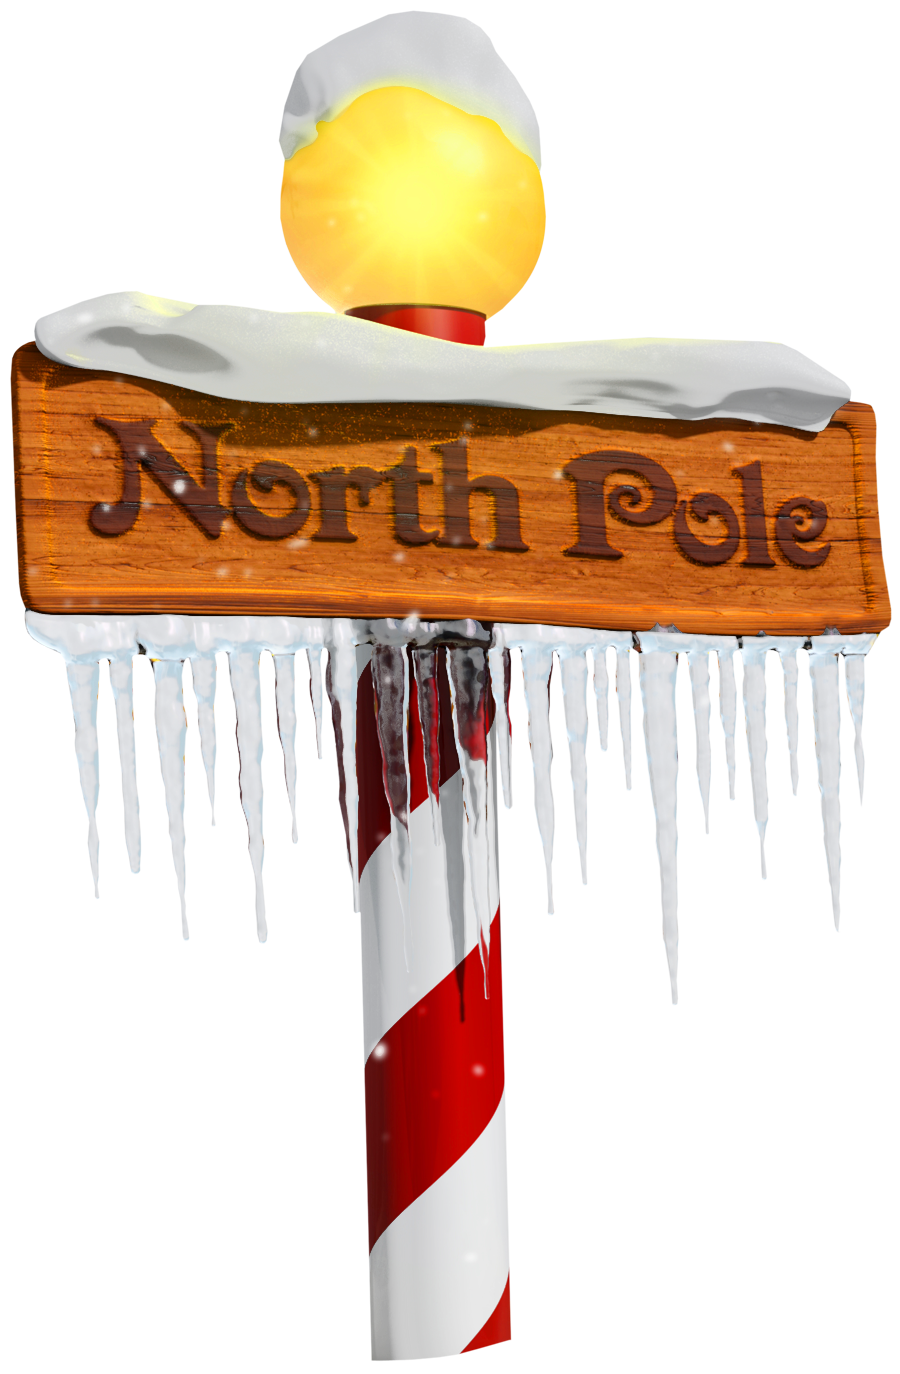 Winter clipart sign. North pole png gallery